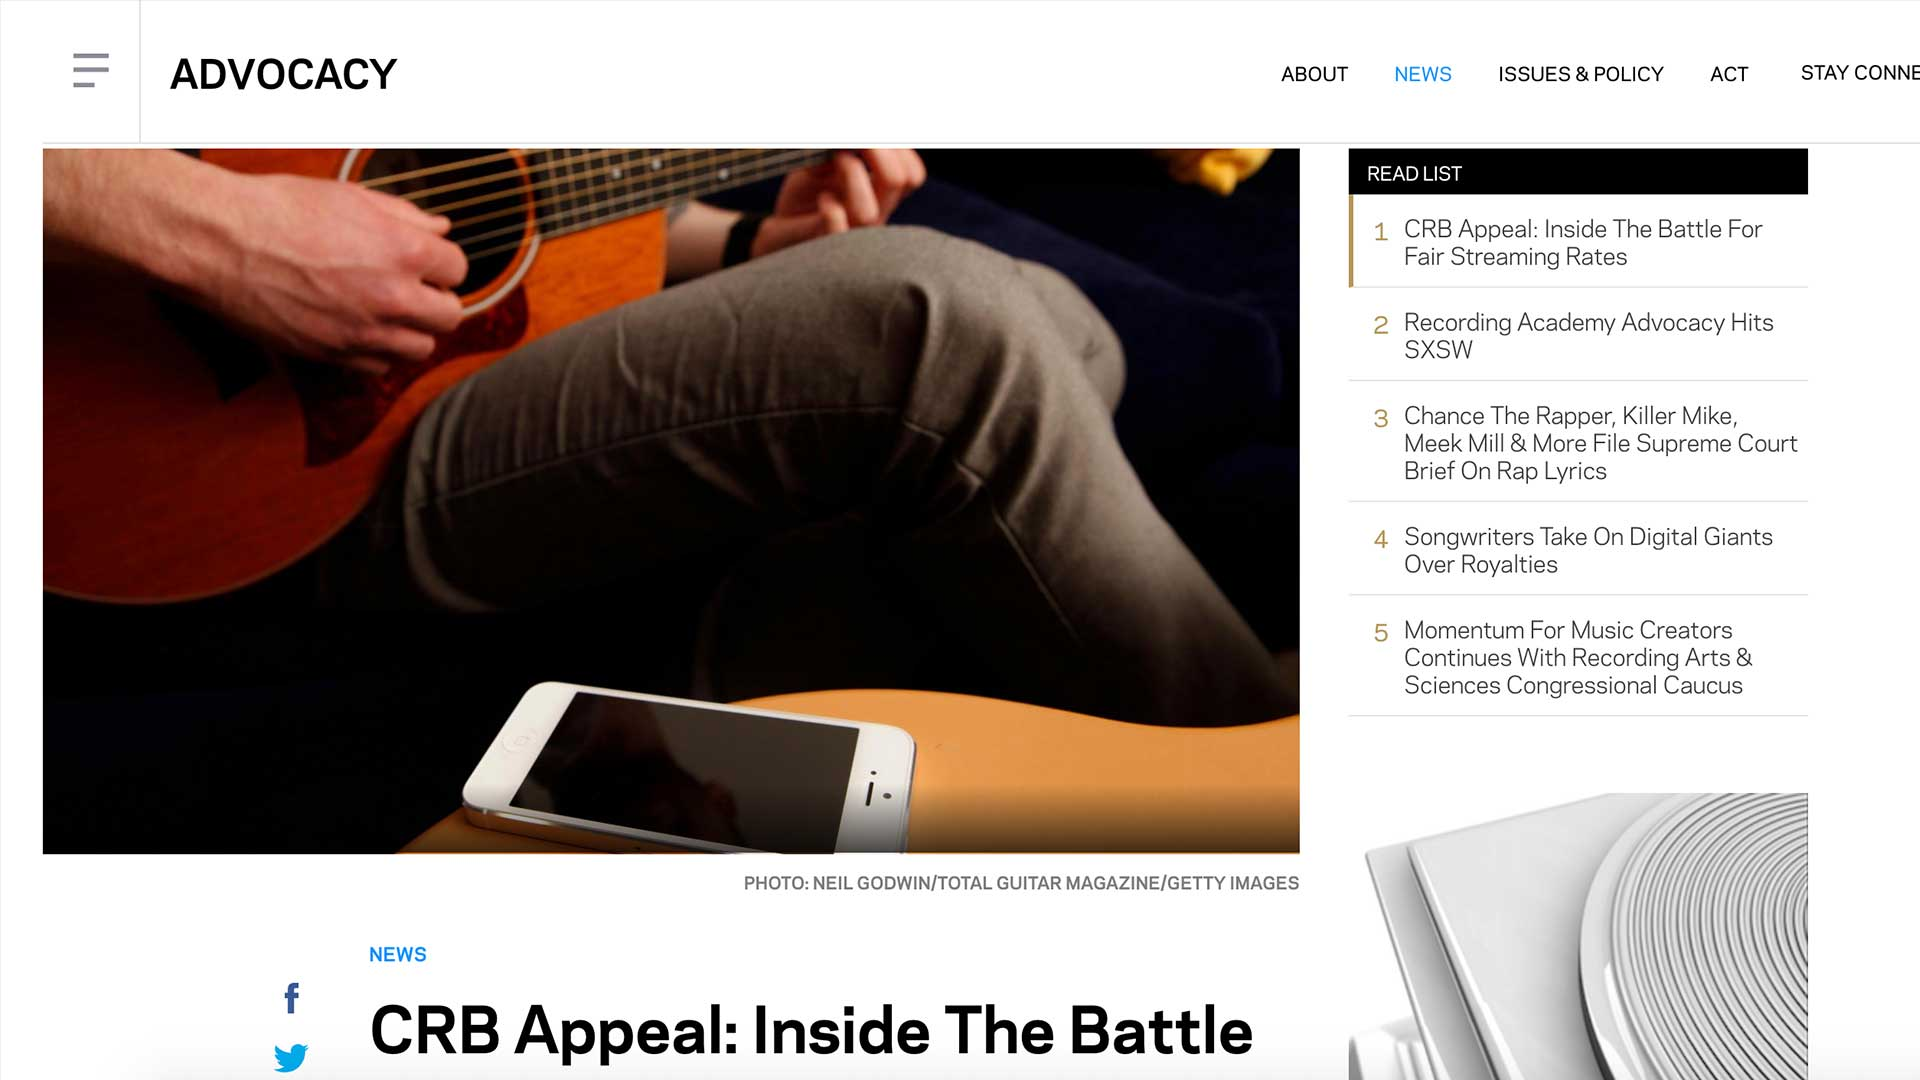 Fairness Rocks News CRB Appeal: Inside The Battle For Fair Streaming Rates